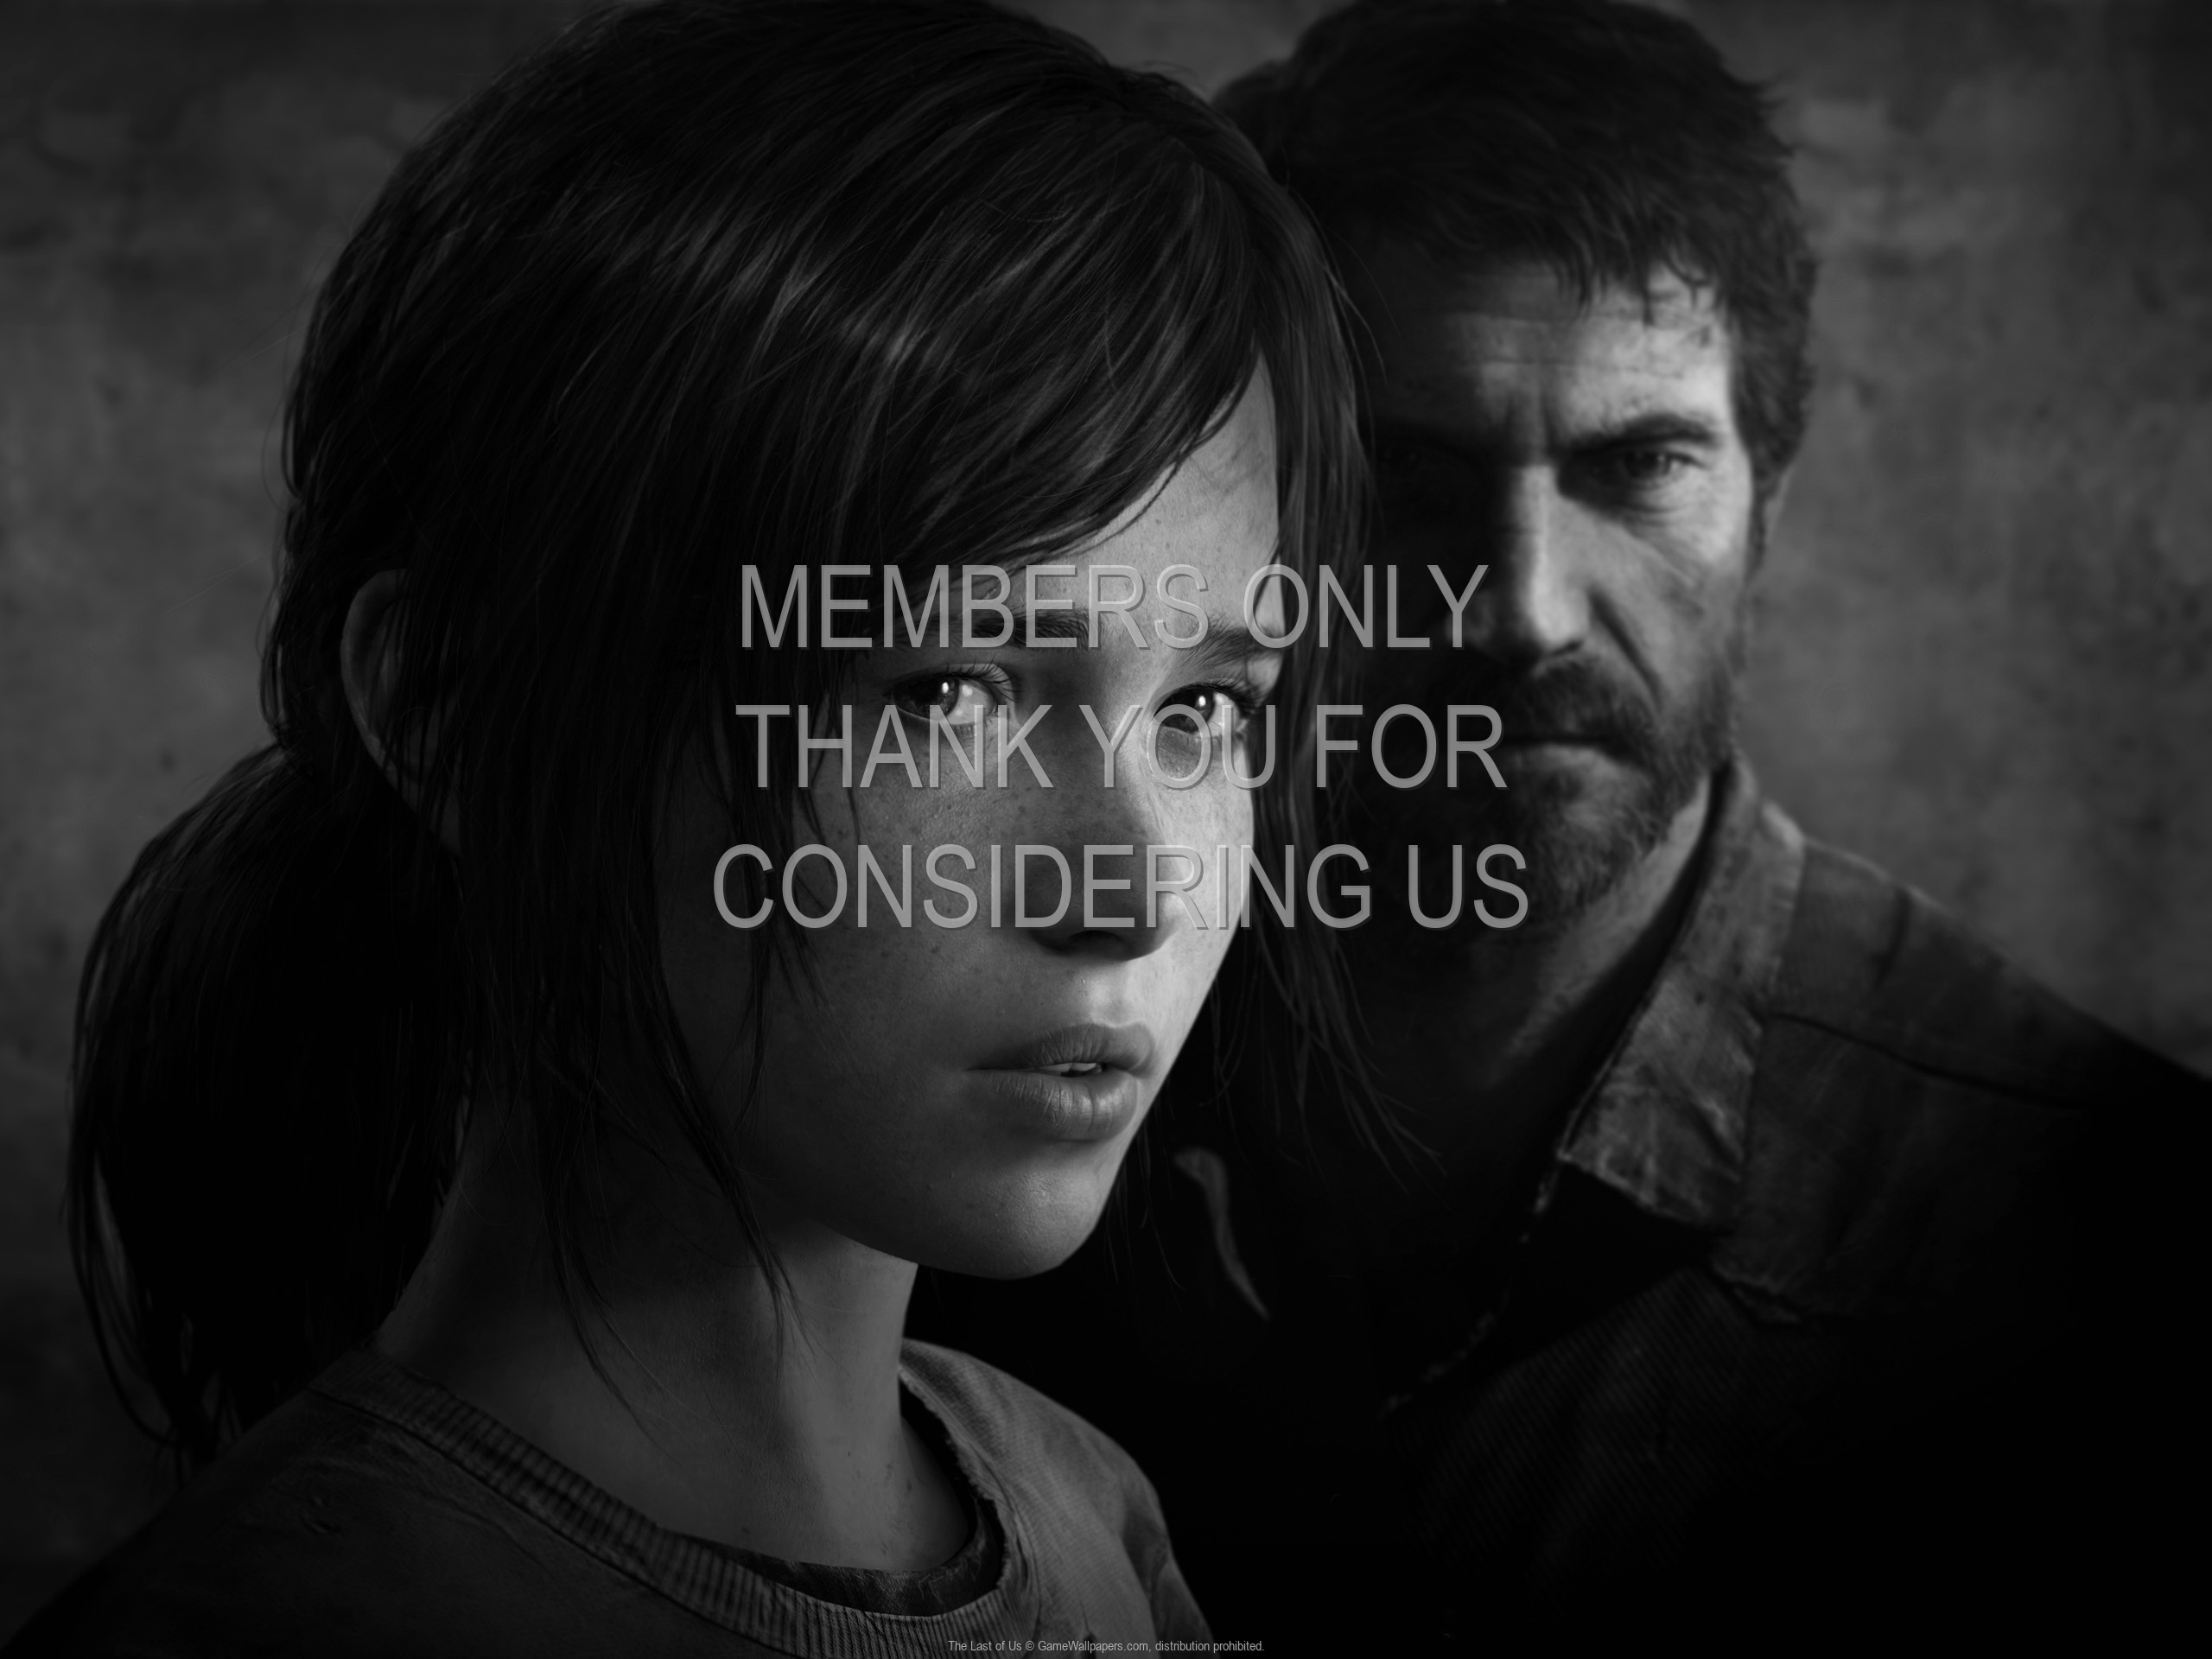 The Last of Us 1920x1080 Mobile wallpaper or background 03